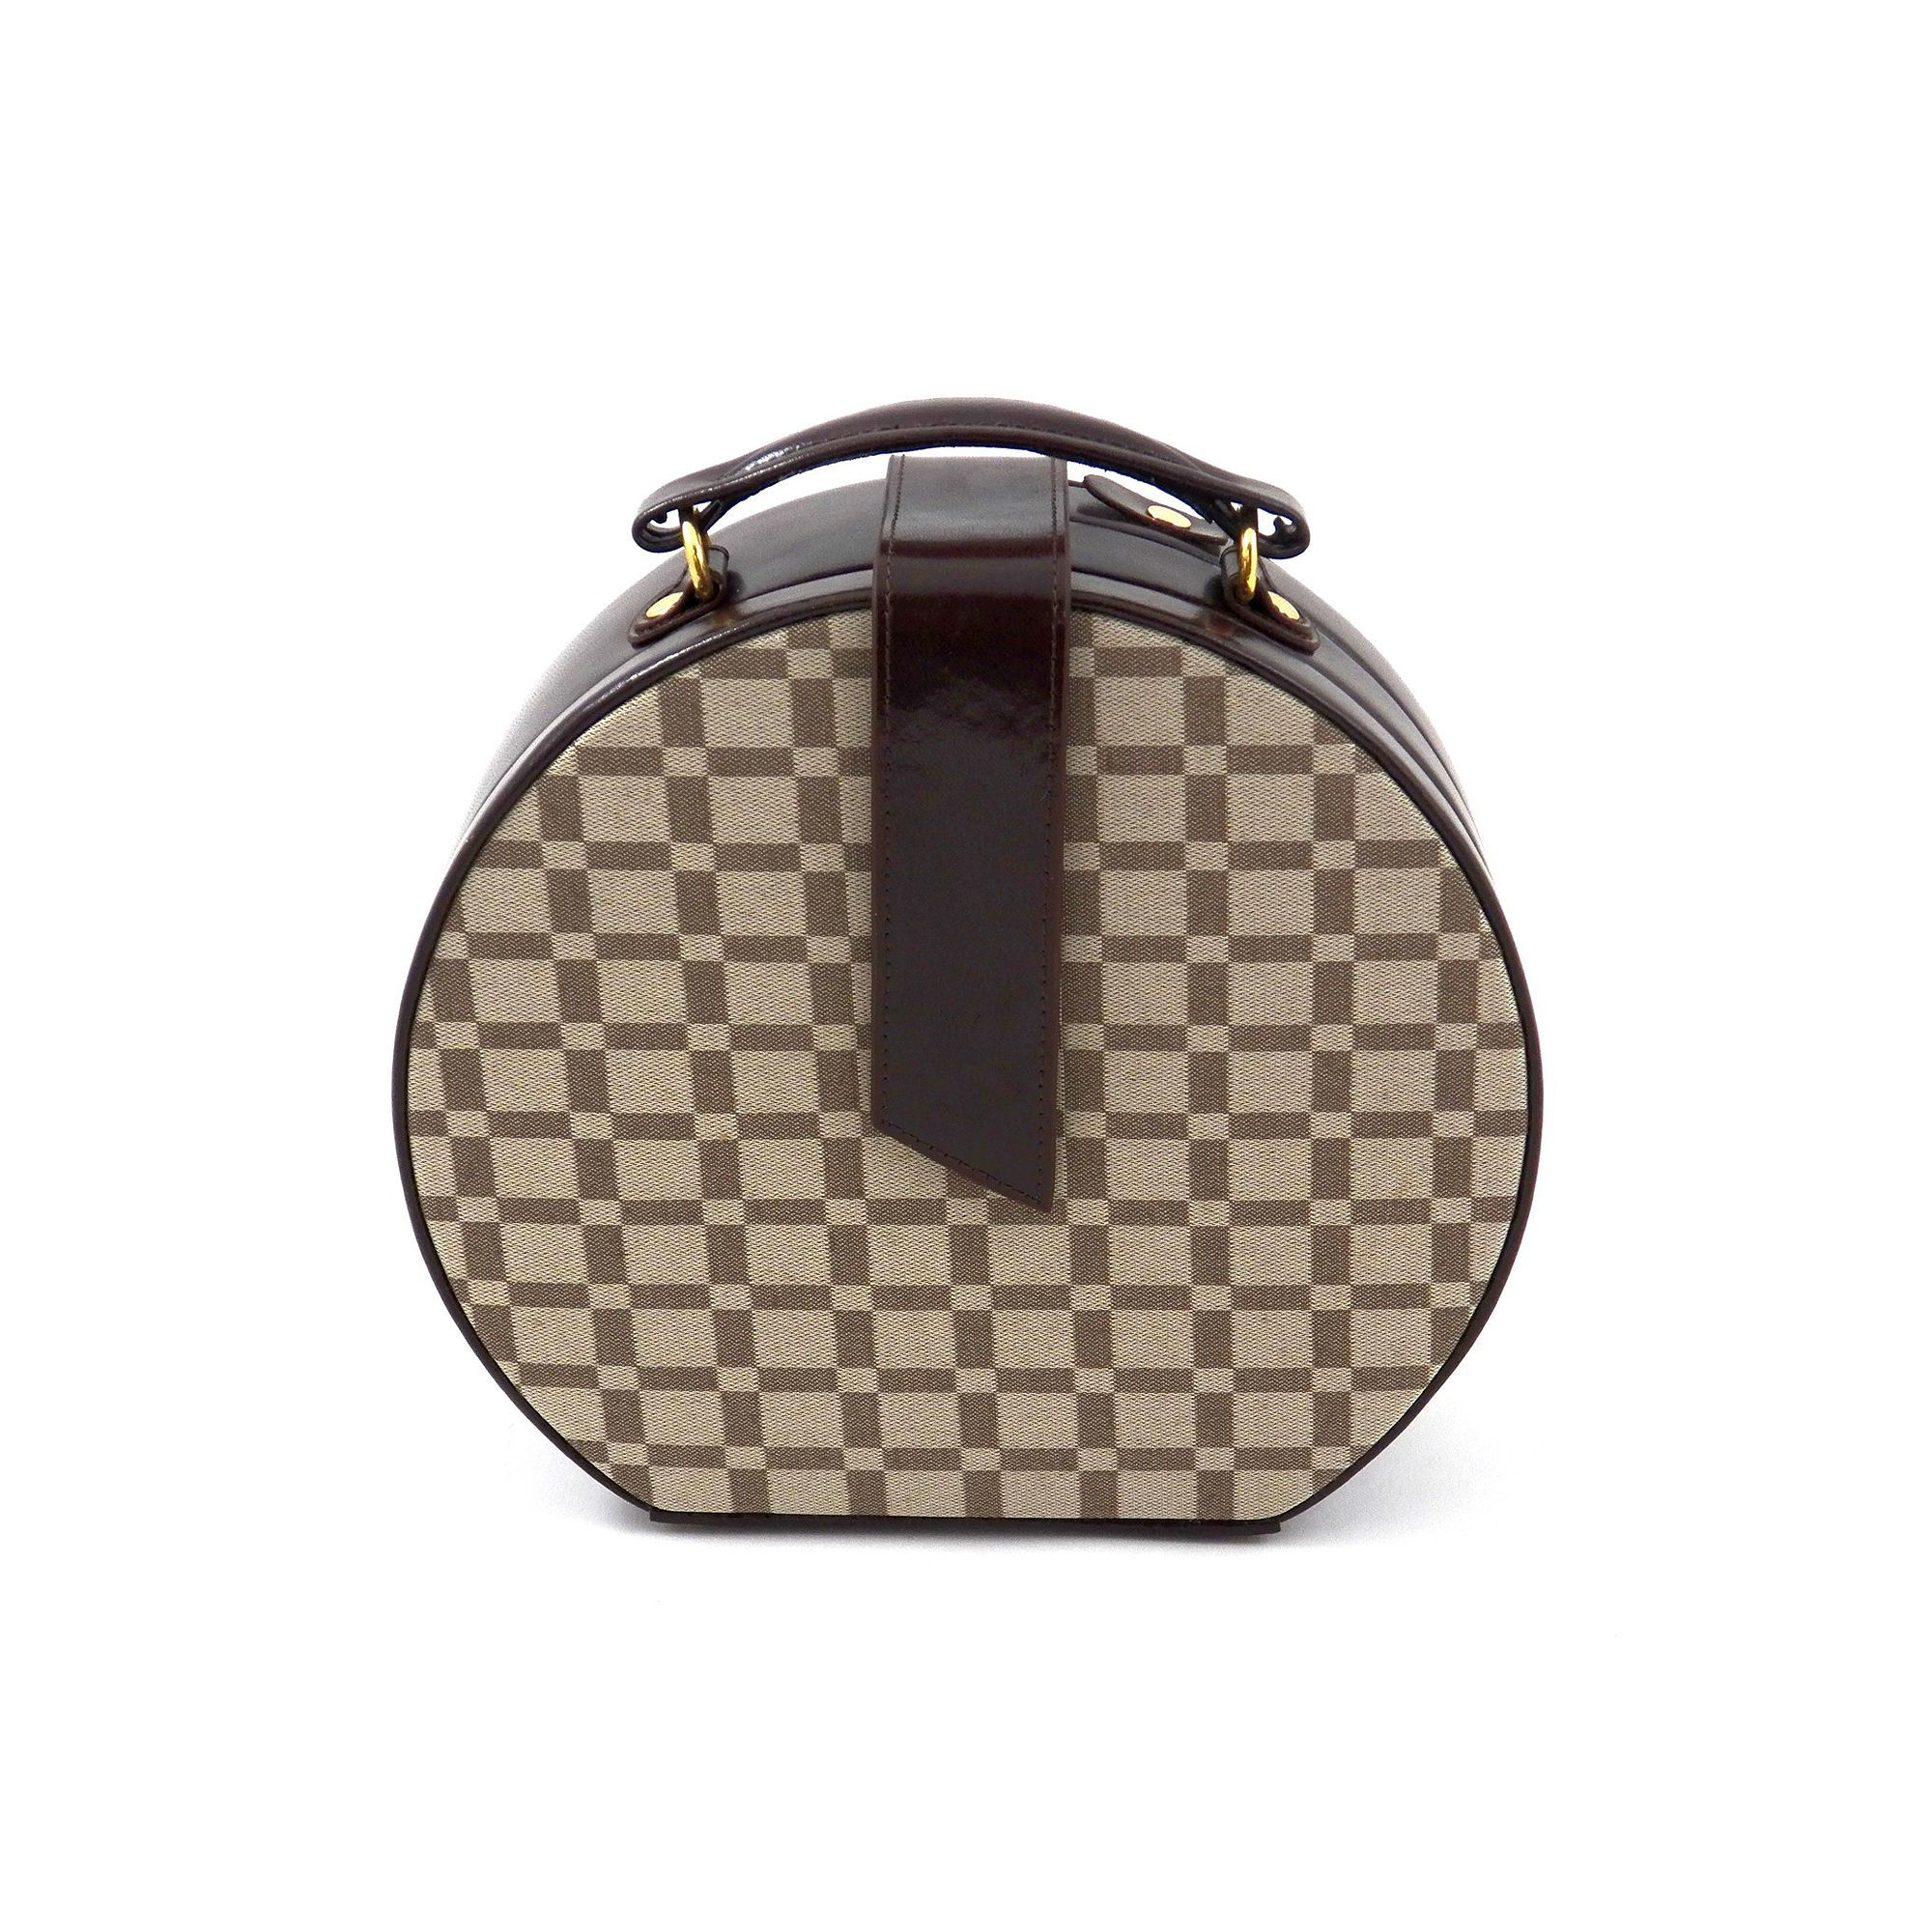 Kohls Jewelry Box Fair Beyberk Brown Leather Checkered Jewelry Box And Valet Tray Set Inspiration Design